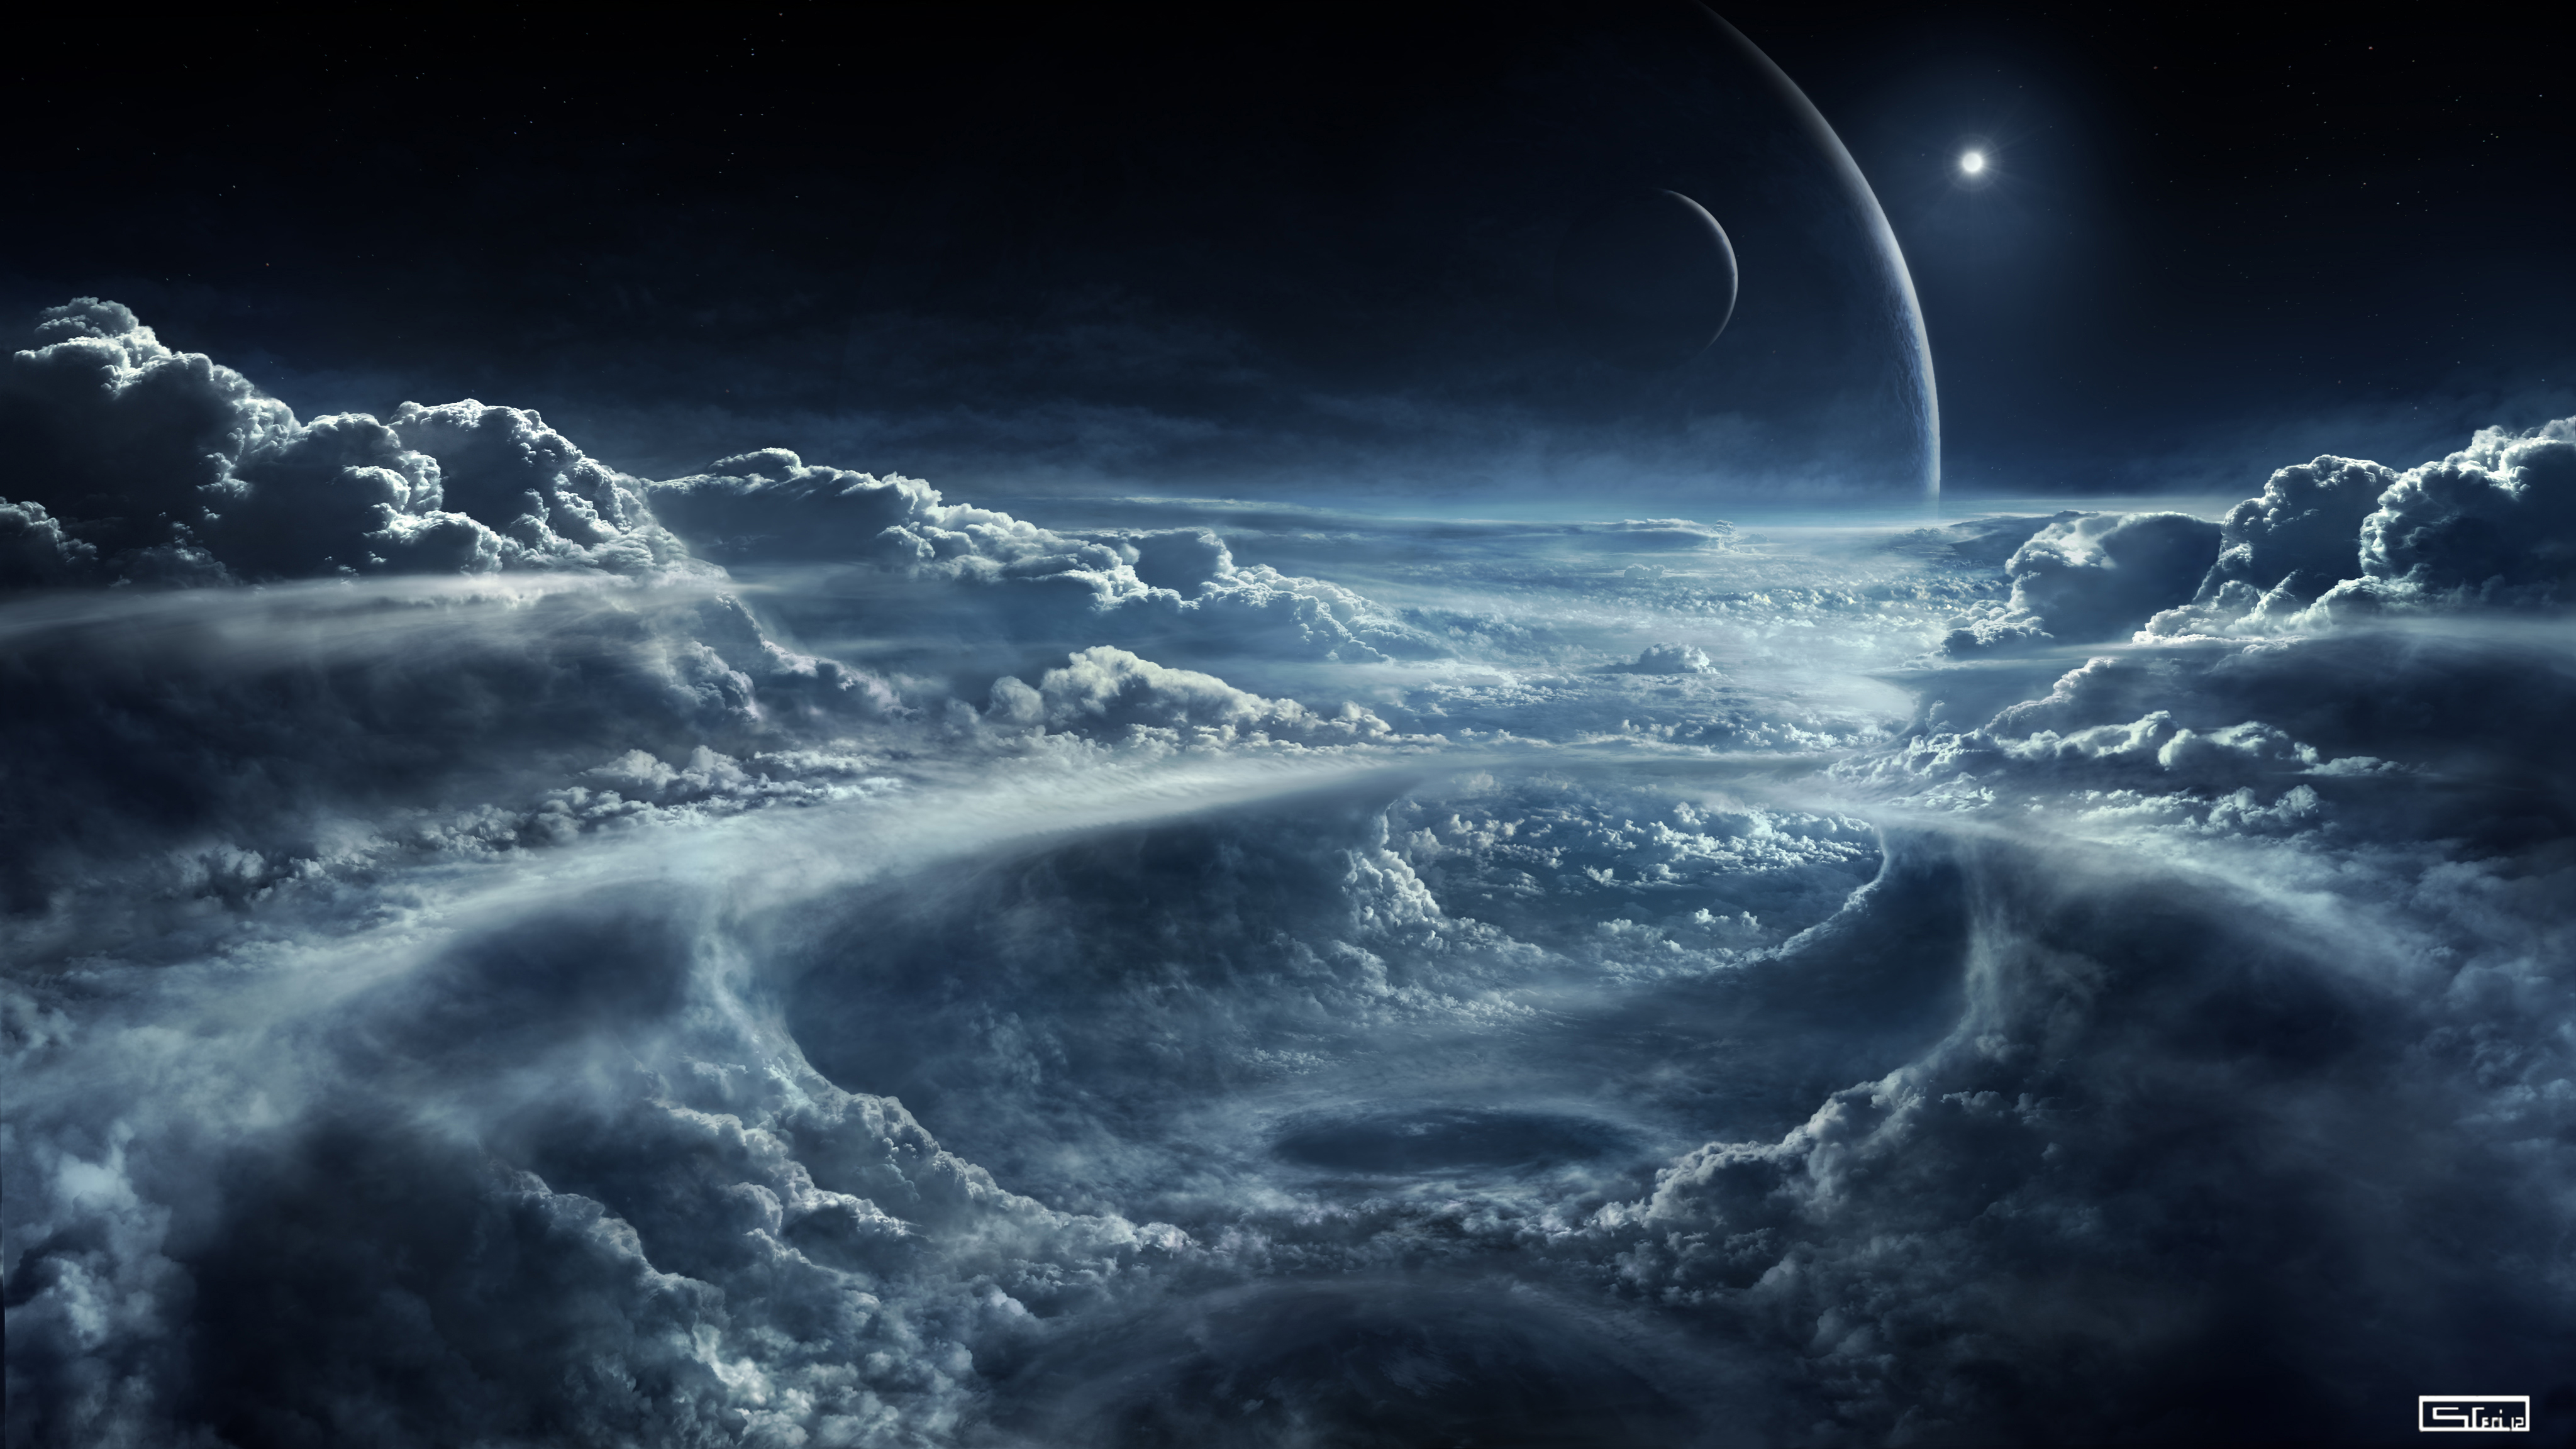 Free download 20K Space and Clouds Wallpaper 20K Wallpaper Ultra HD ...